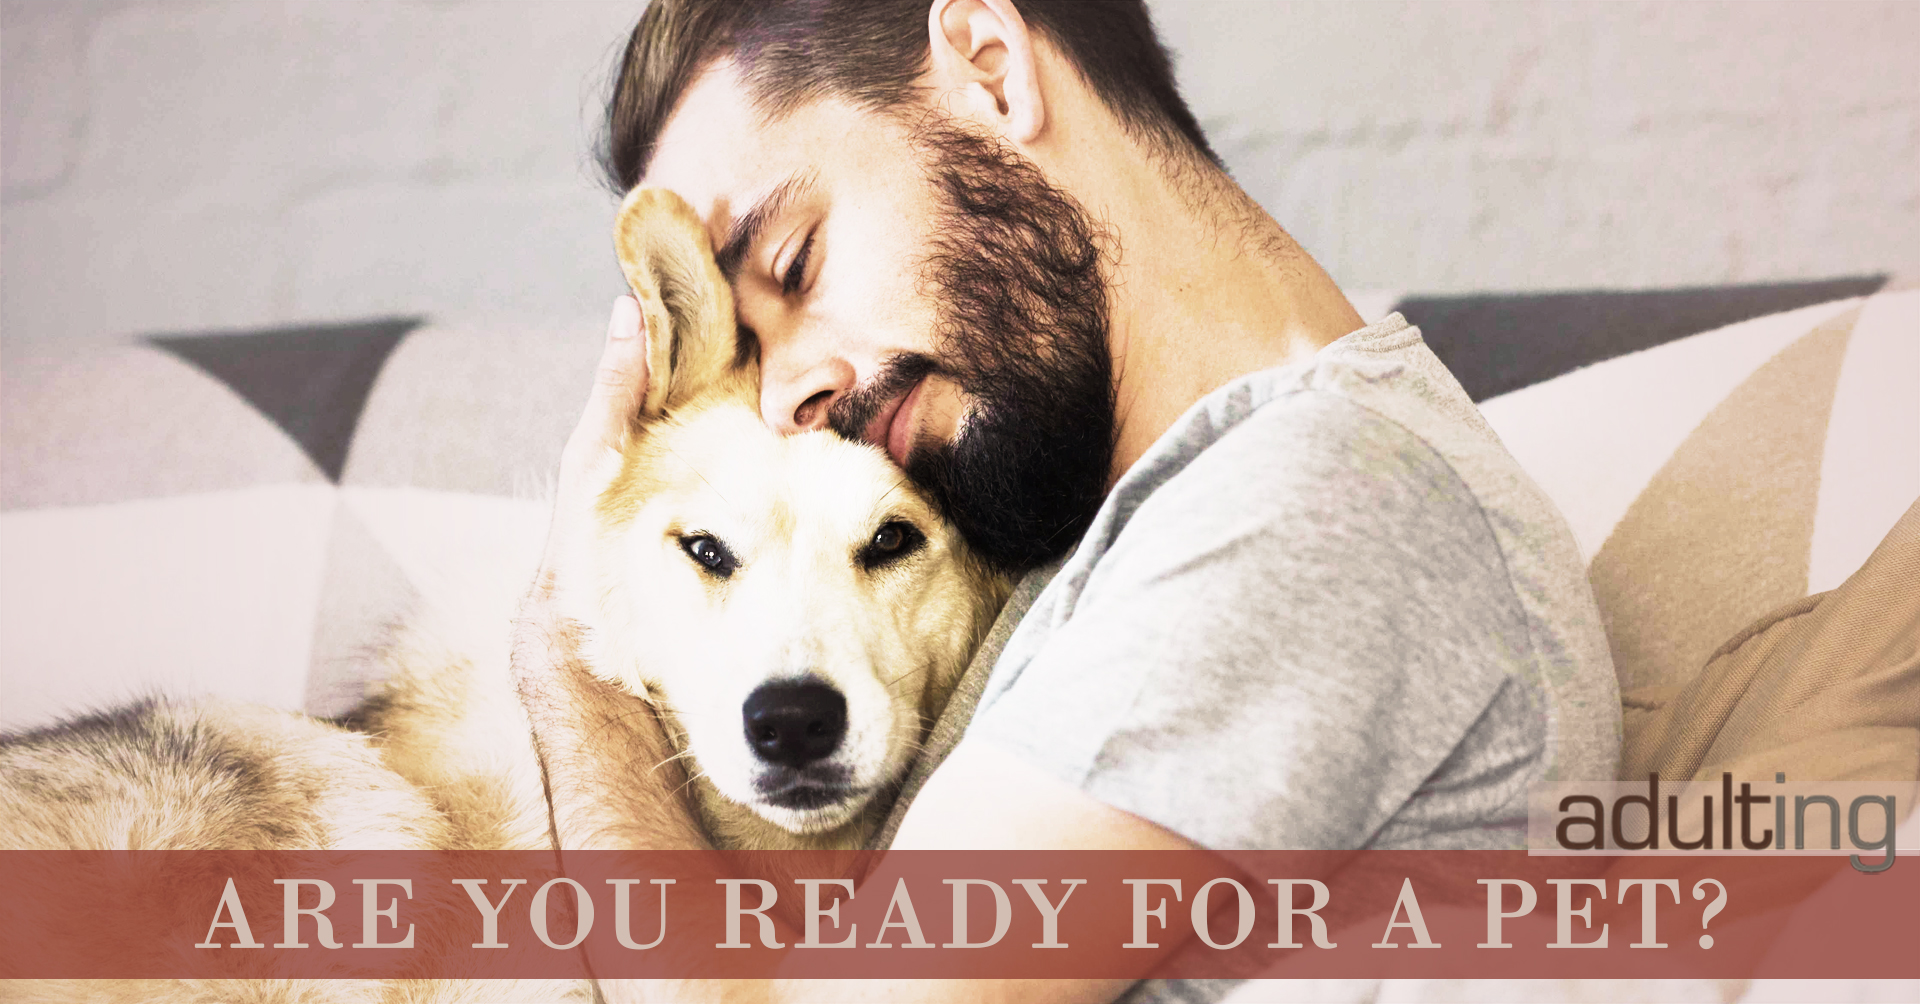 Are You Ready for a Pet?